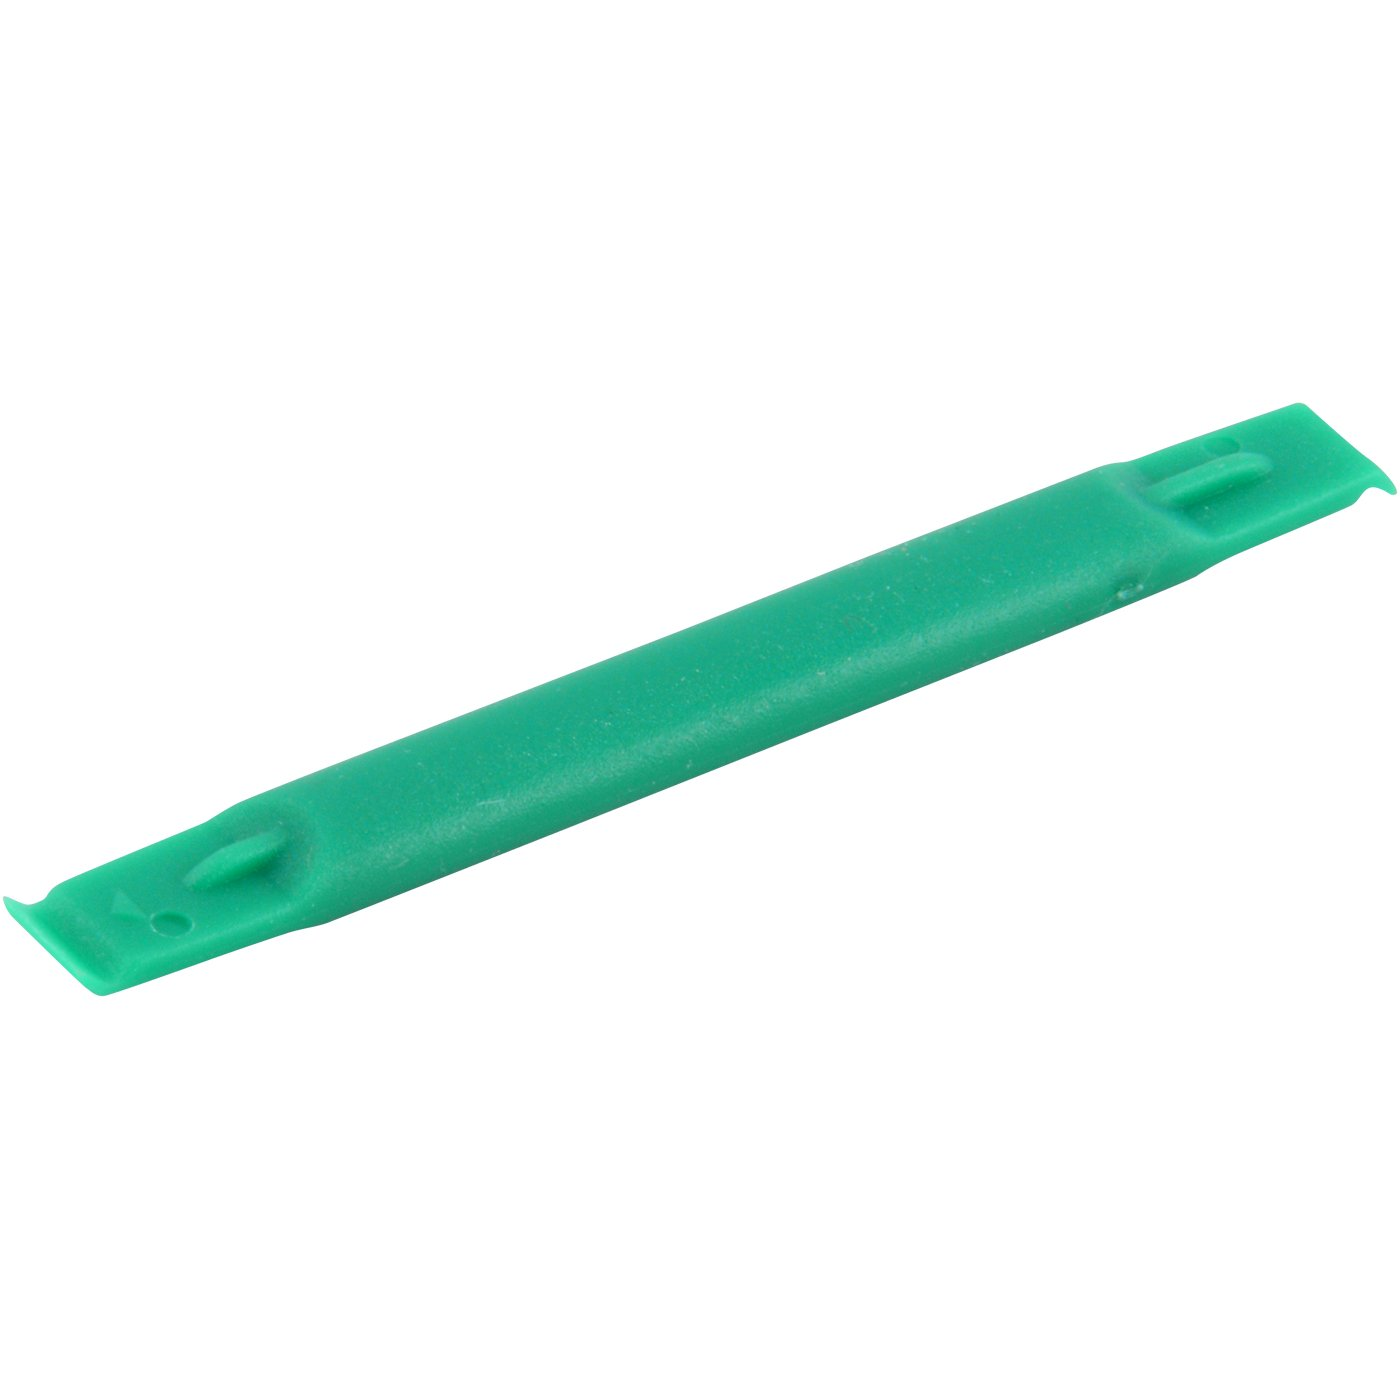 5-Pack Nylon Plastic Spudger Non-Marring Opening Tool Pry Bar for Cell Phone//Tablet//Laptop